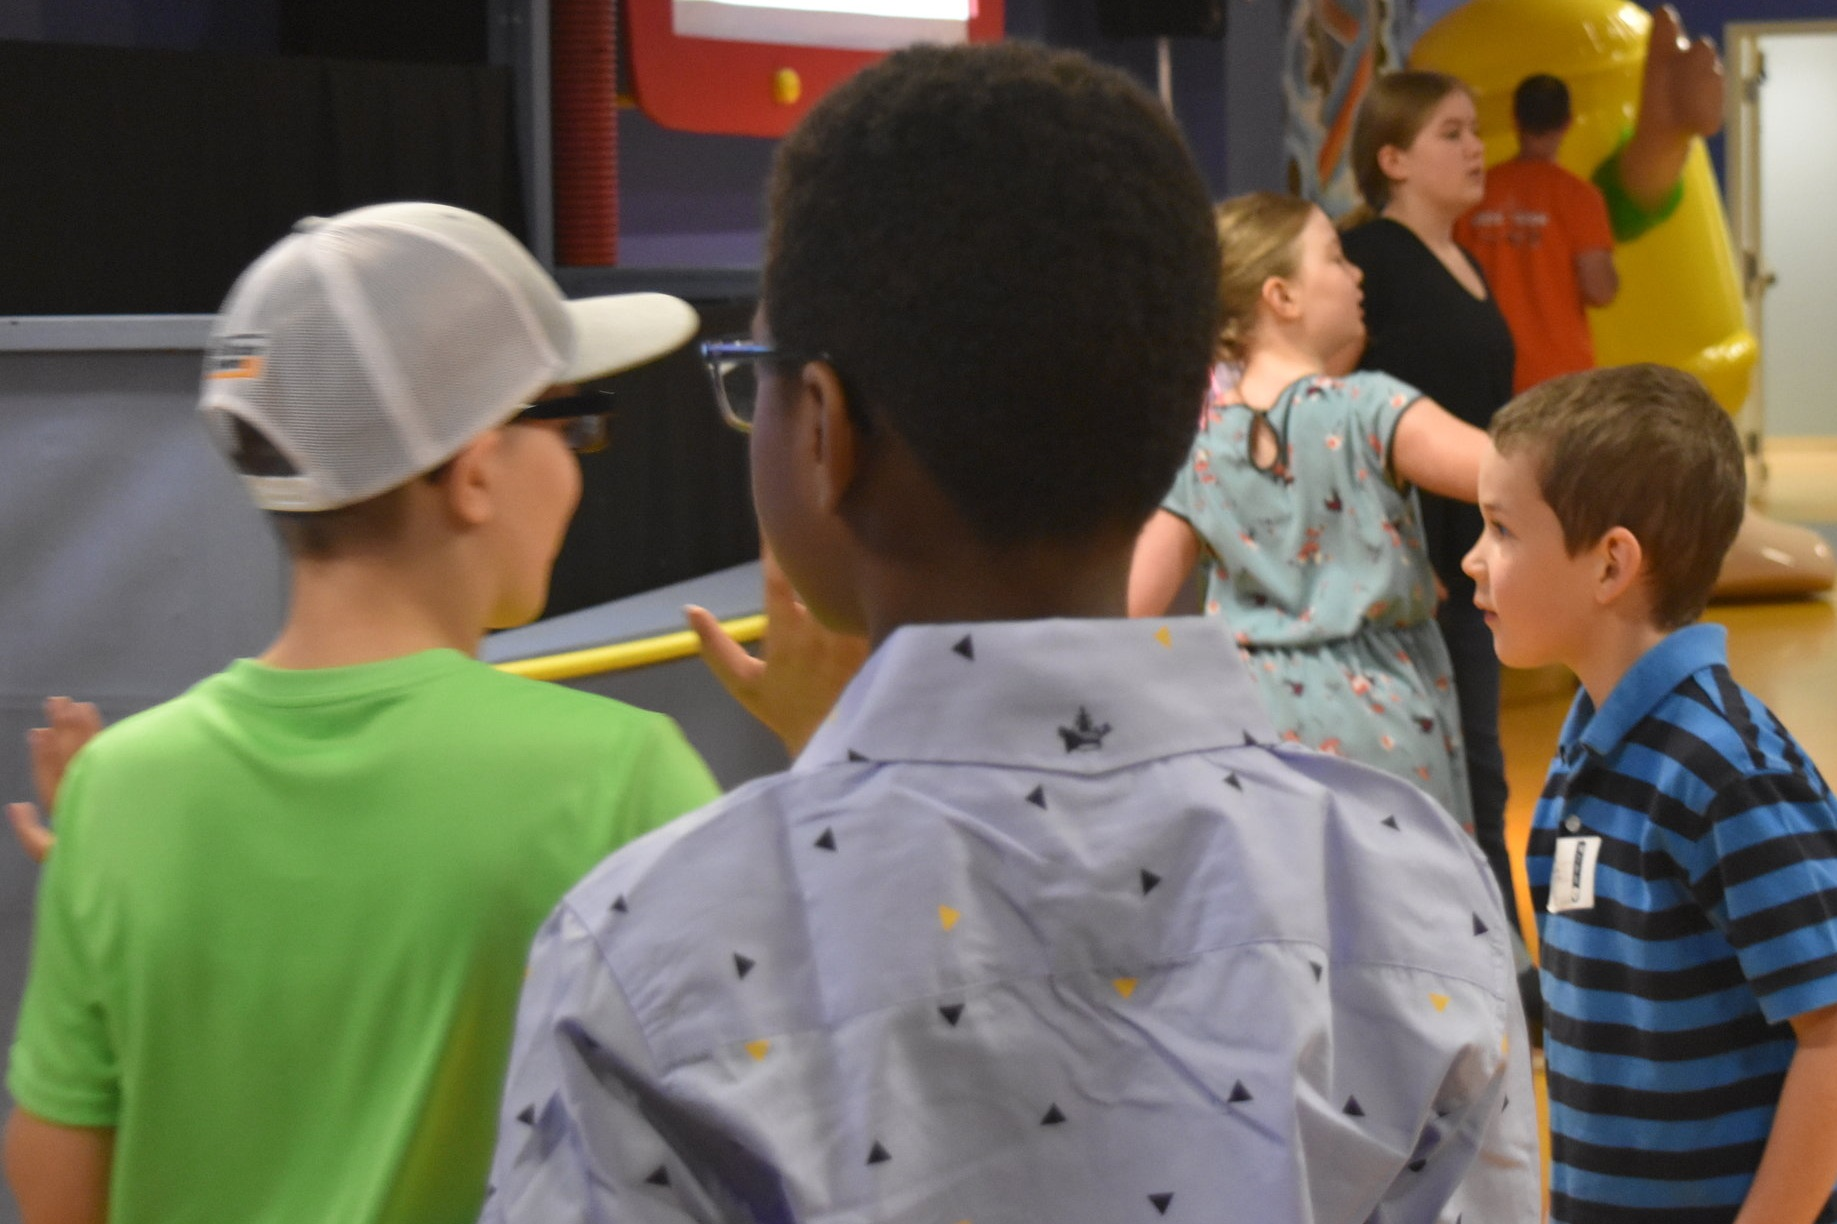 SERVICES - From special kids services on Sundays to Special Kids programming on Wednesday nights, Tower Hill Kids offers programs for kids who are 6 weeks old through 5th grade. We create a safe environment for children to learn about Jesus and have a fun time doing it. Kids Check-In begins 30 minutes before each service. You can save some time by pre-registering your child below.